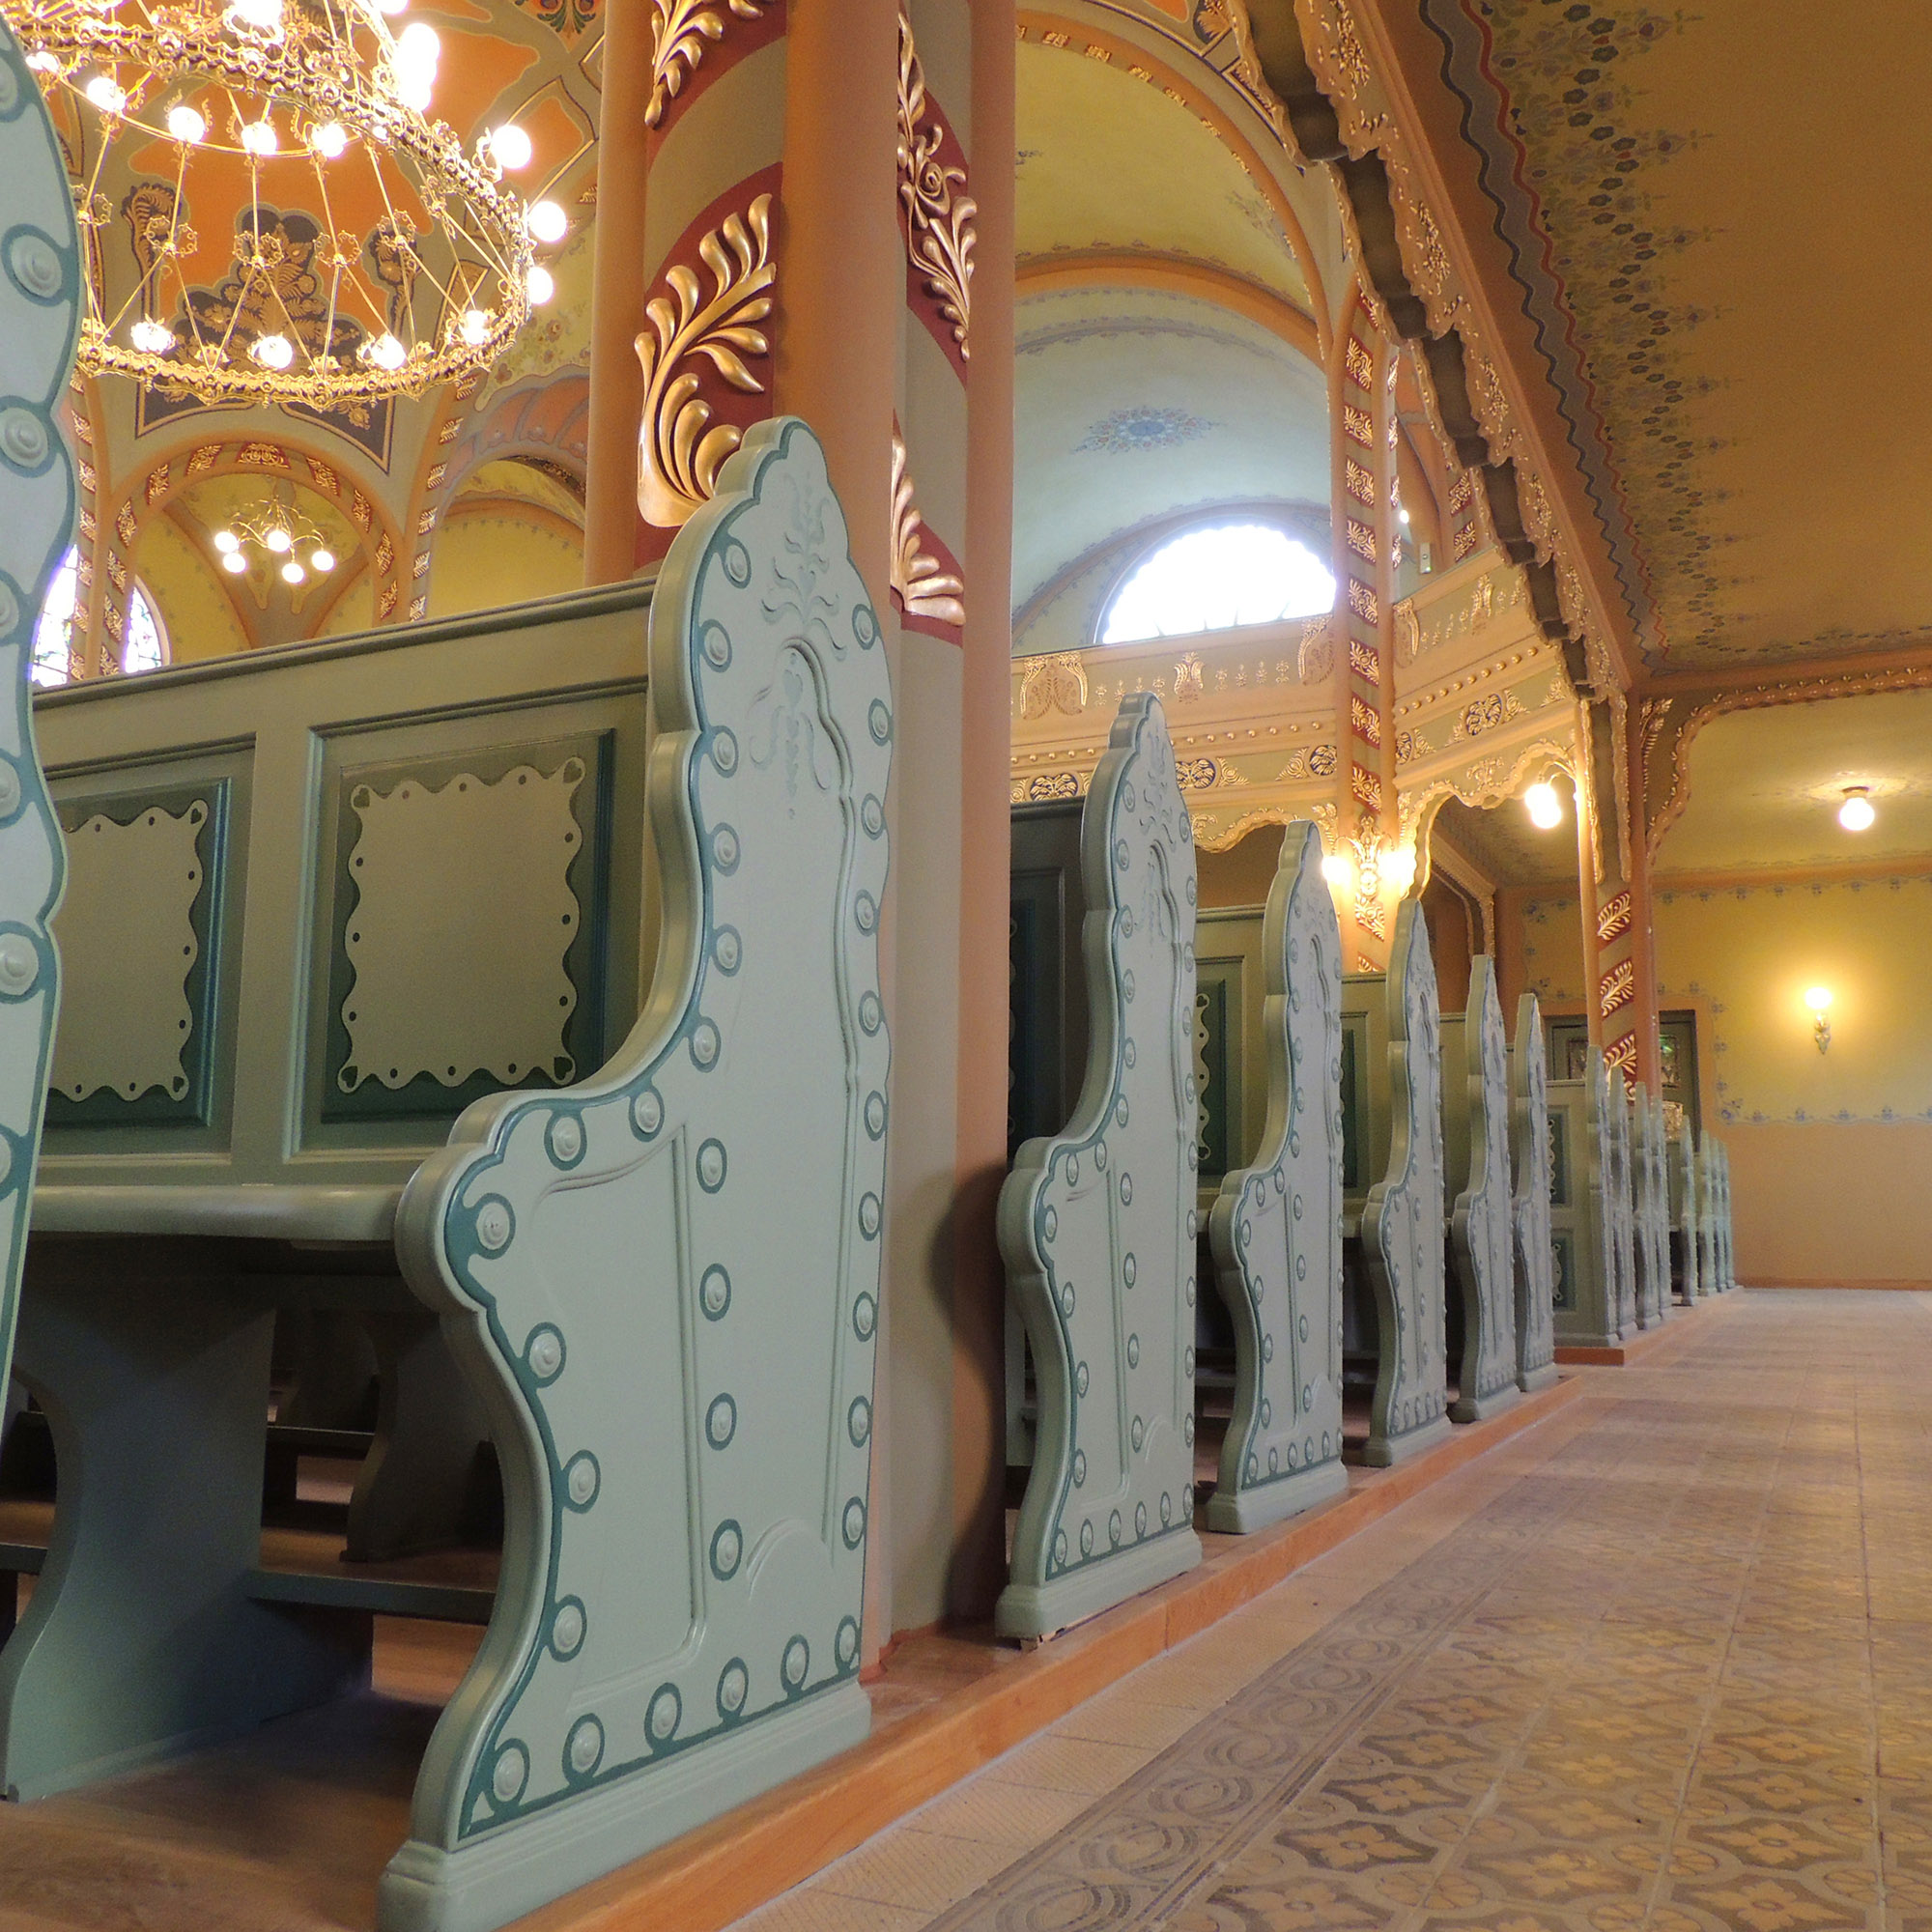 Interior of the Subotica synagogue